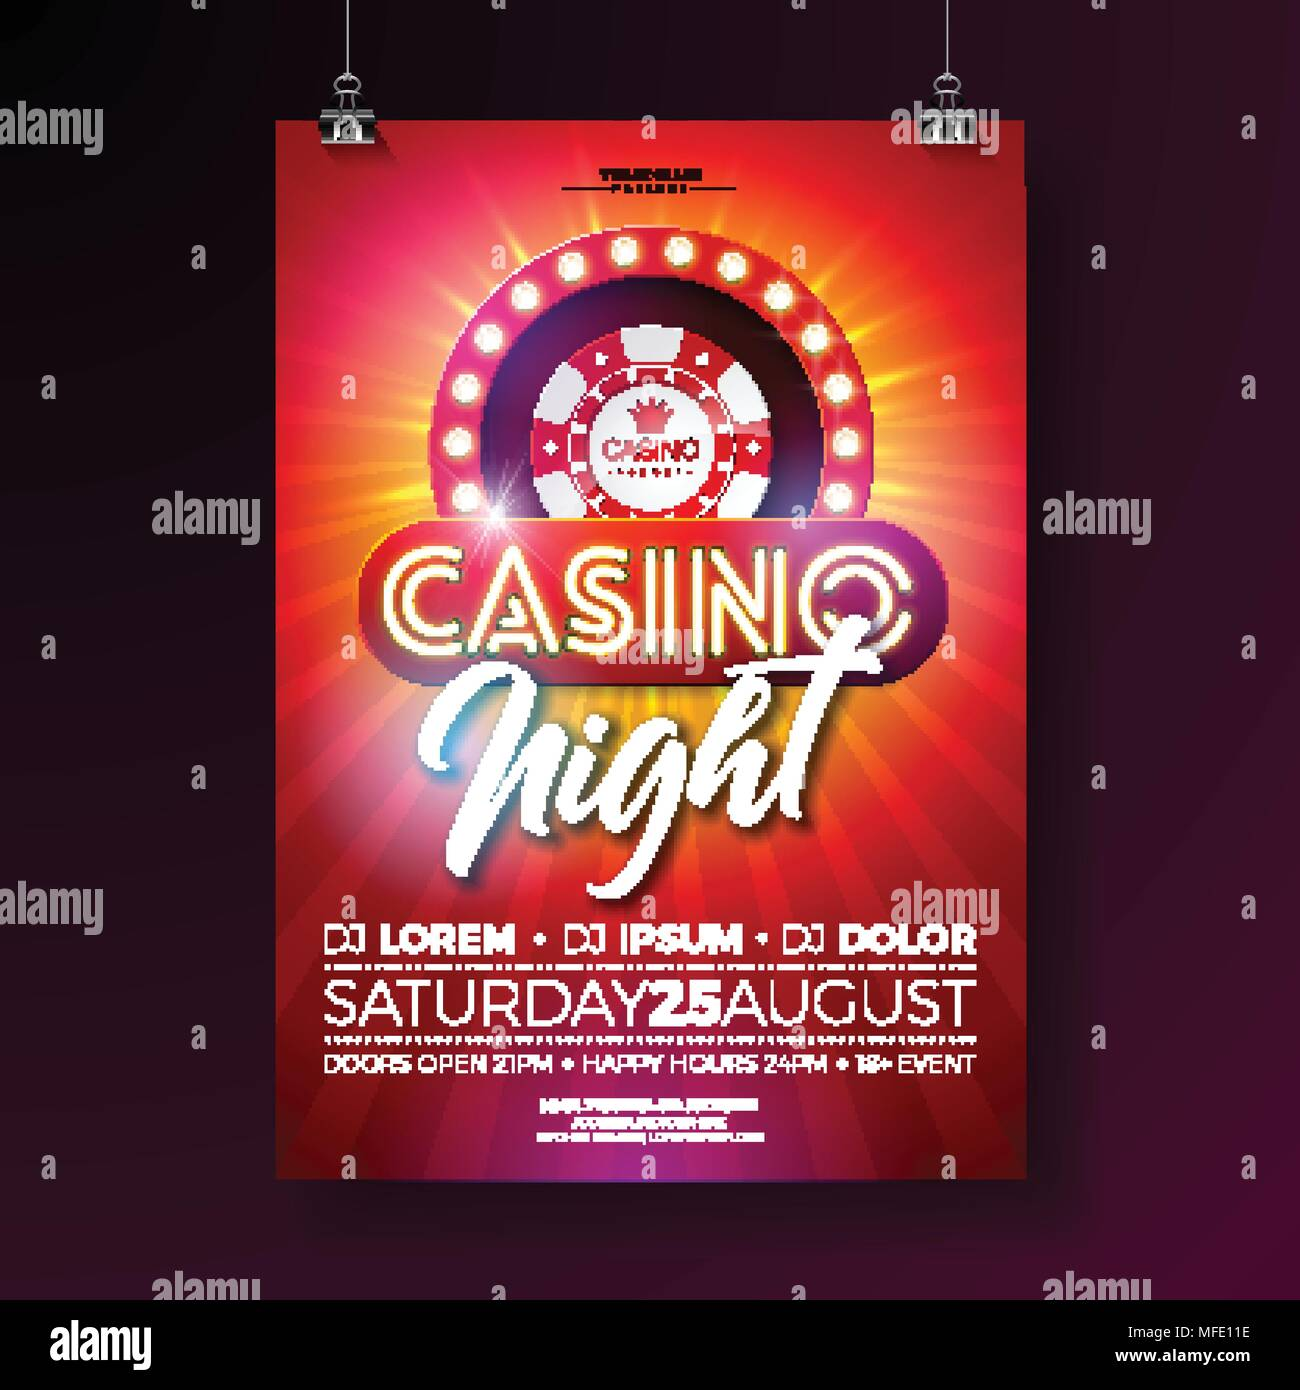 Vector casino night flyer illustration with gambling design elements vector casino night flyer illustration with gambling design elements and shiny neon light lettering on red background luxury invitation poster template stopboris Choice Image